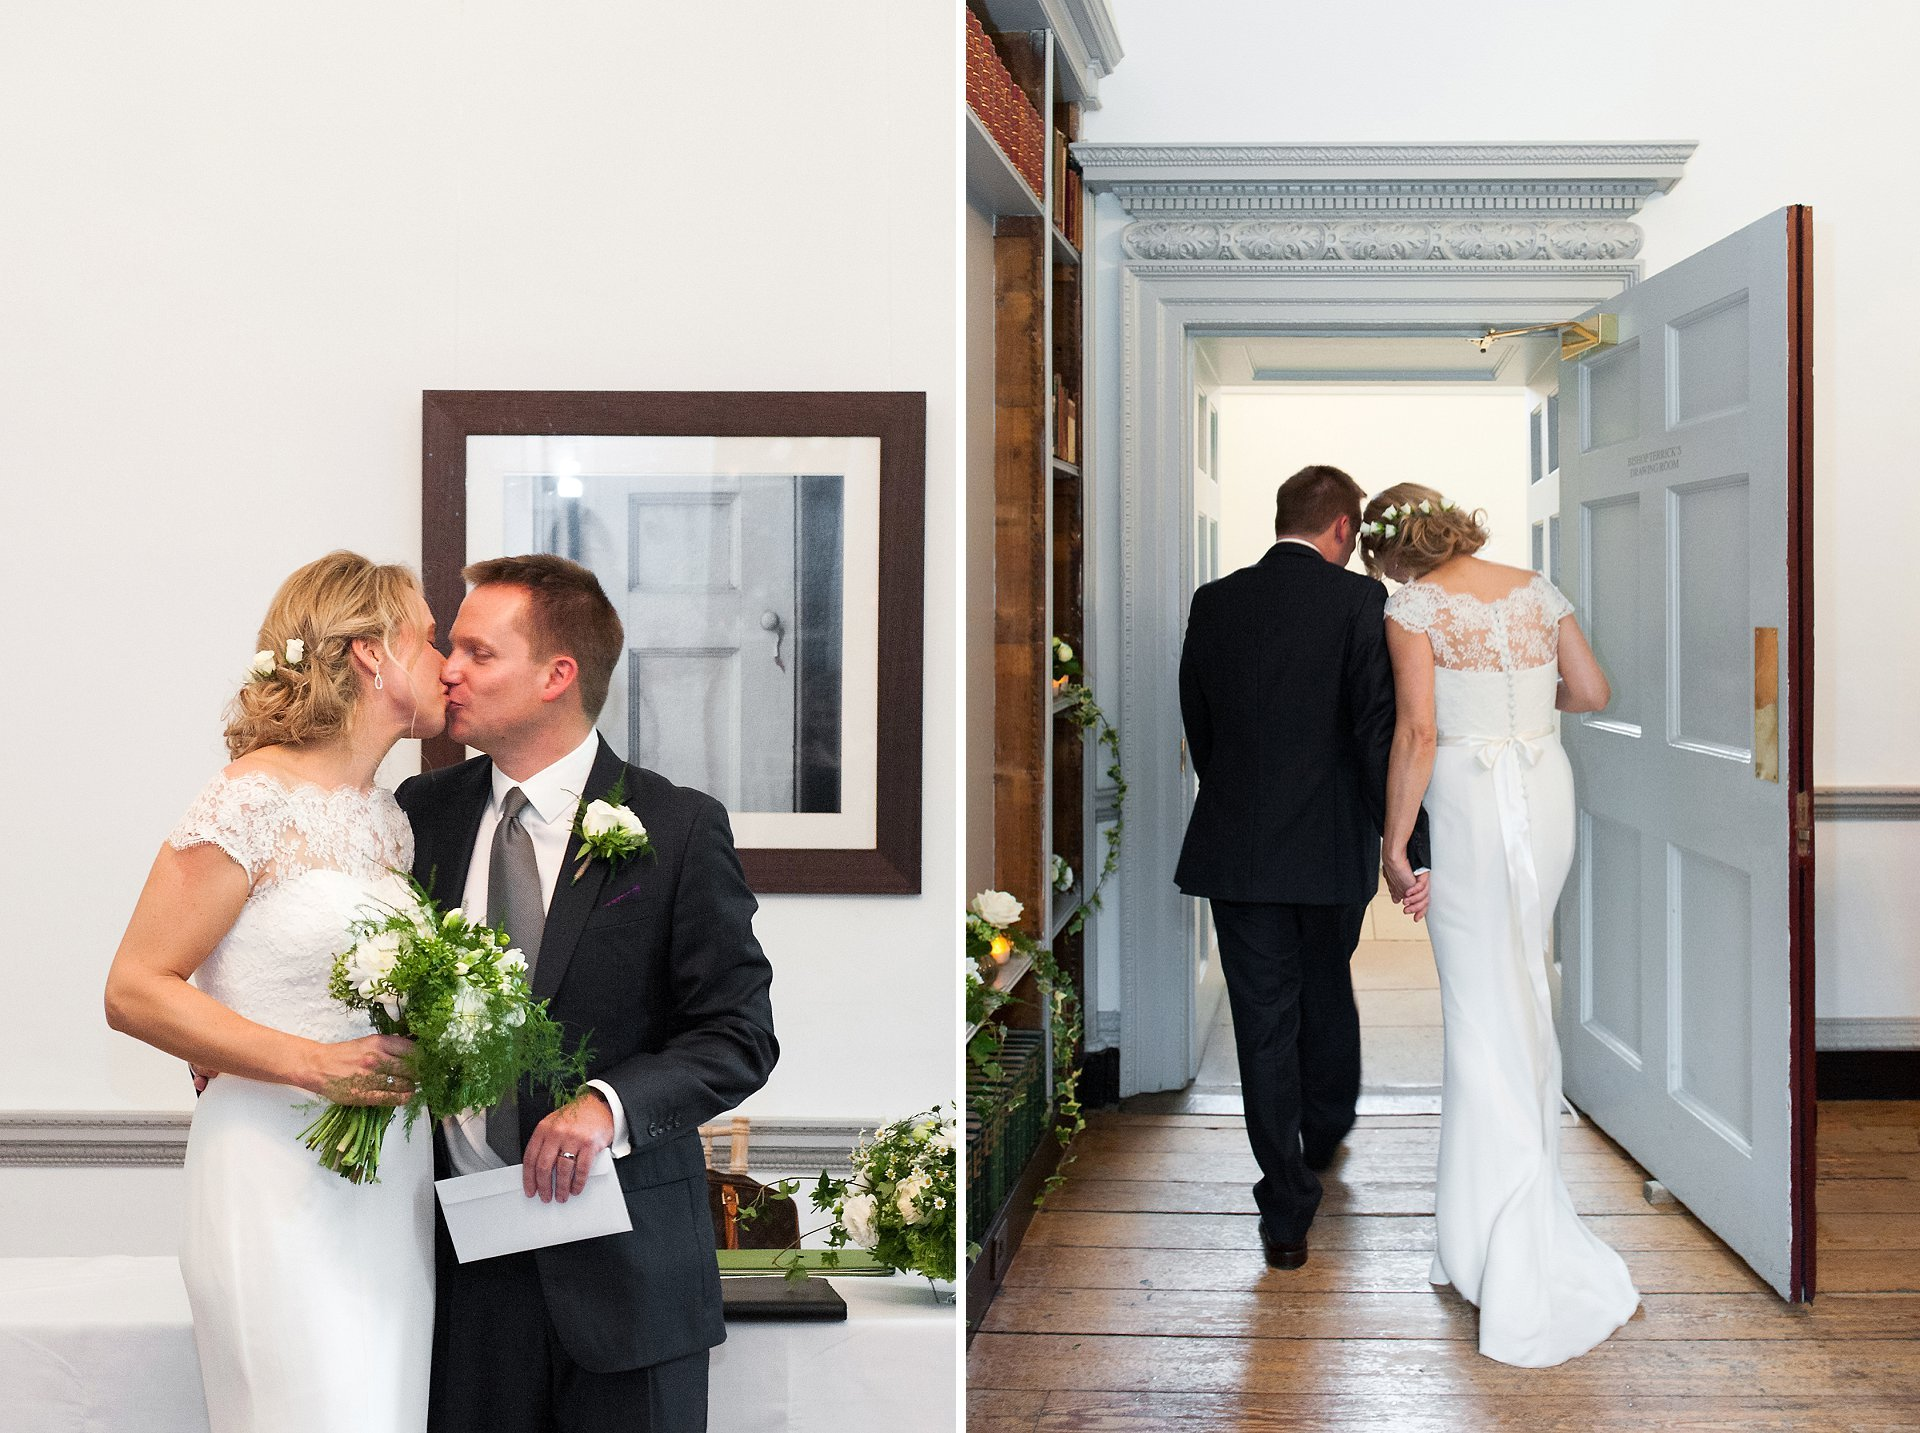 The bride and groom kiss before leaving the Bishop Terrick's Drawing Room at Fulham Palace